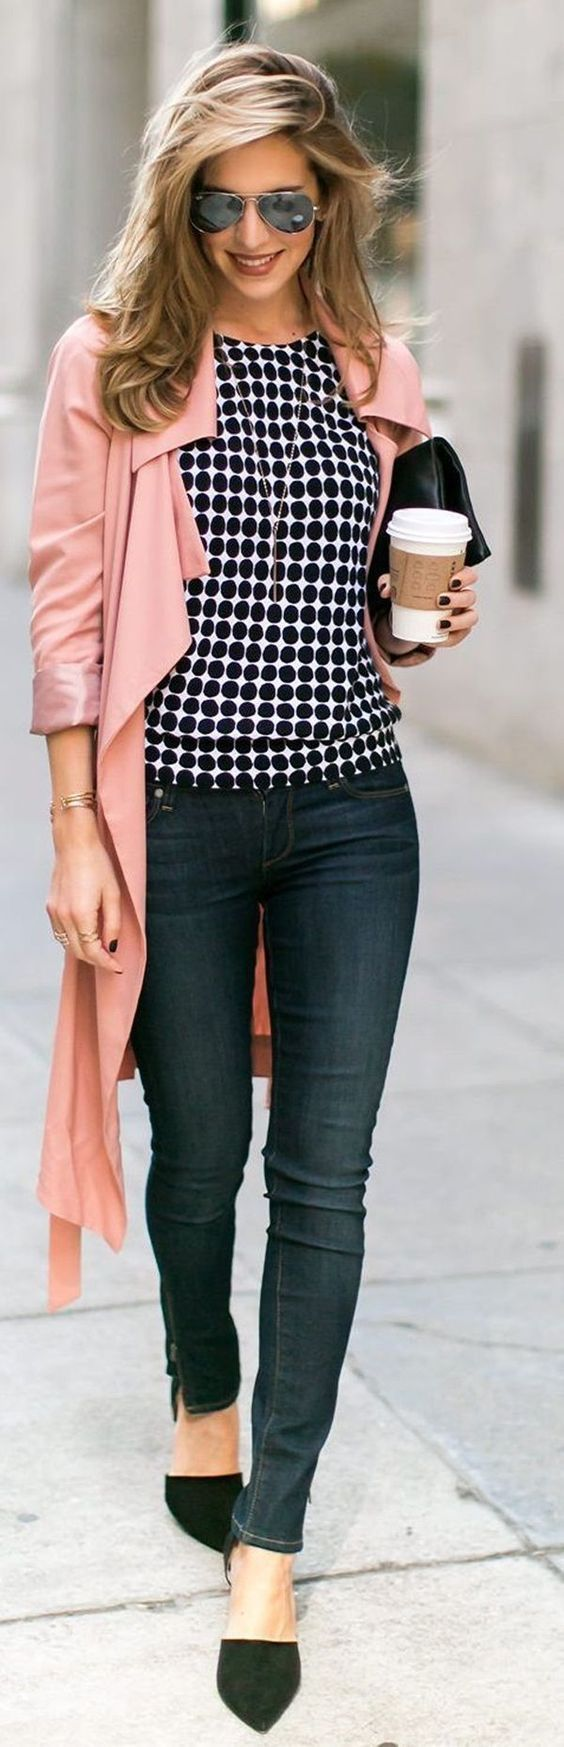 Business casual - jeans